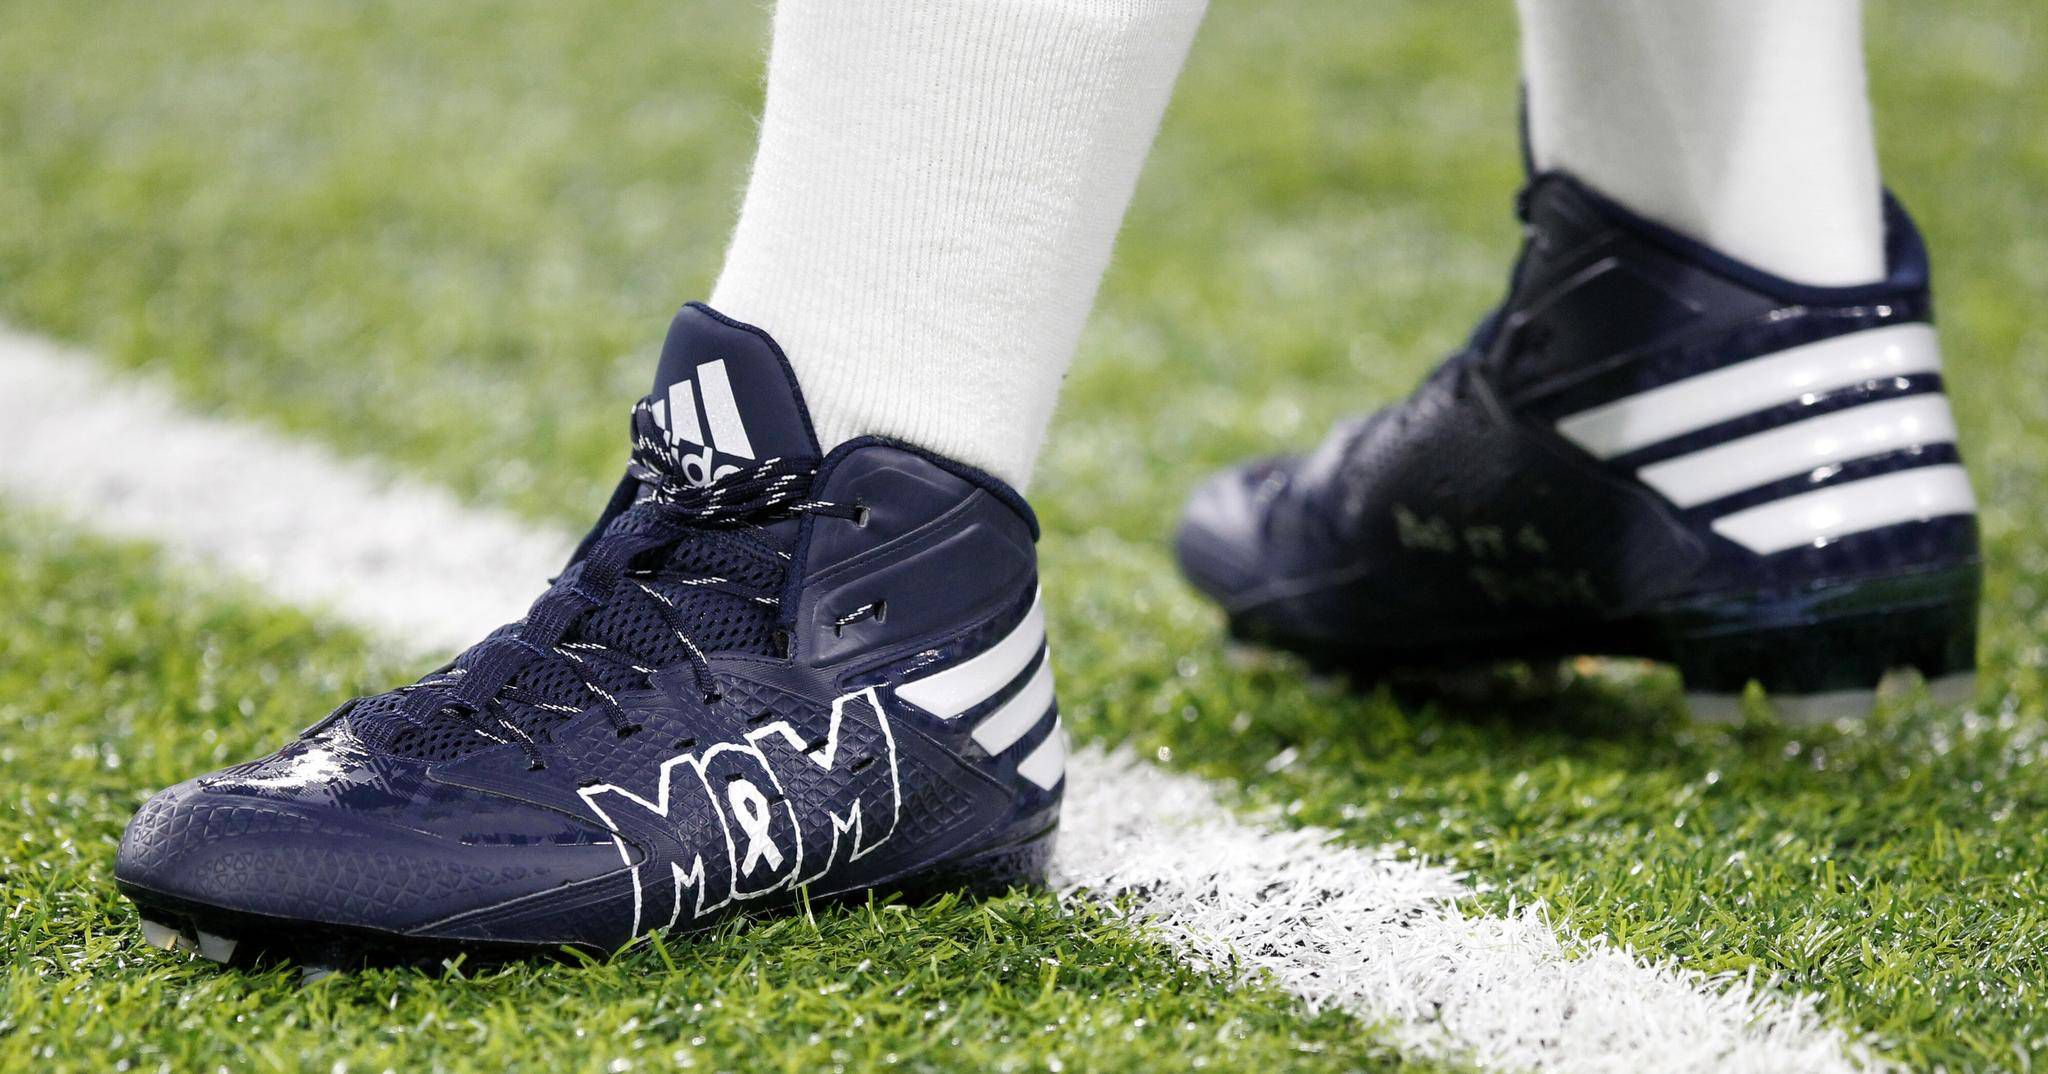 d19a27bbc922a NFL footwear rules waived to allow cleats for charity causes - The ...